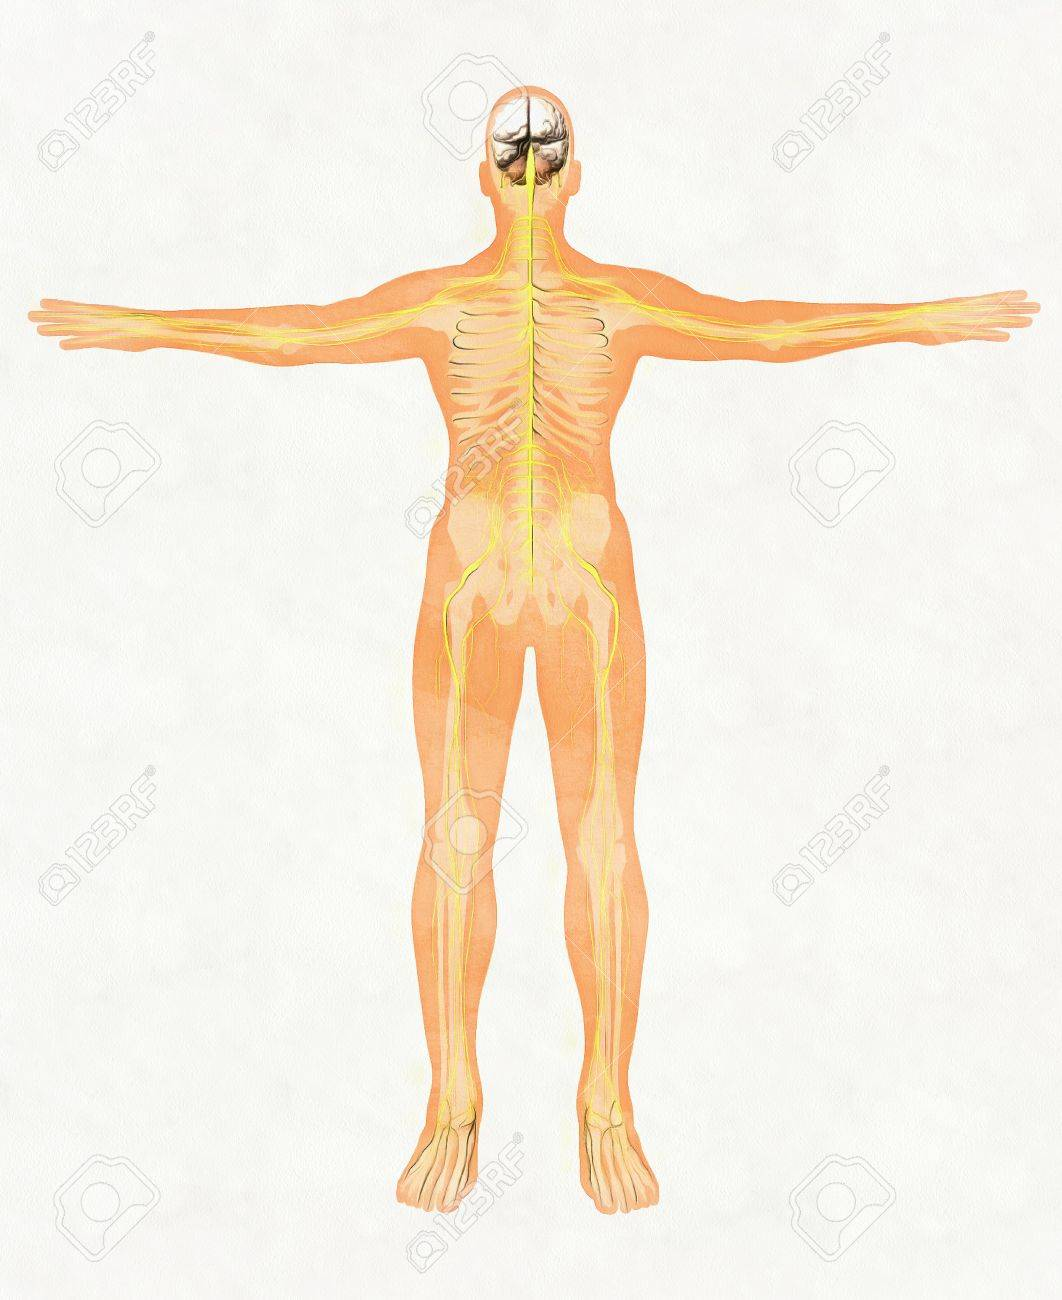 Human Body Silhouette And Nervous System Stock Photo, Picture And ...